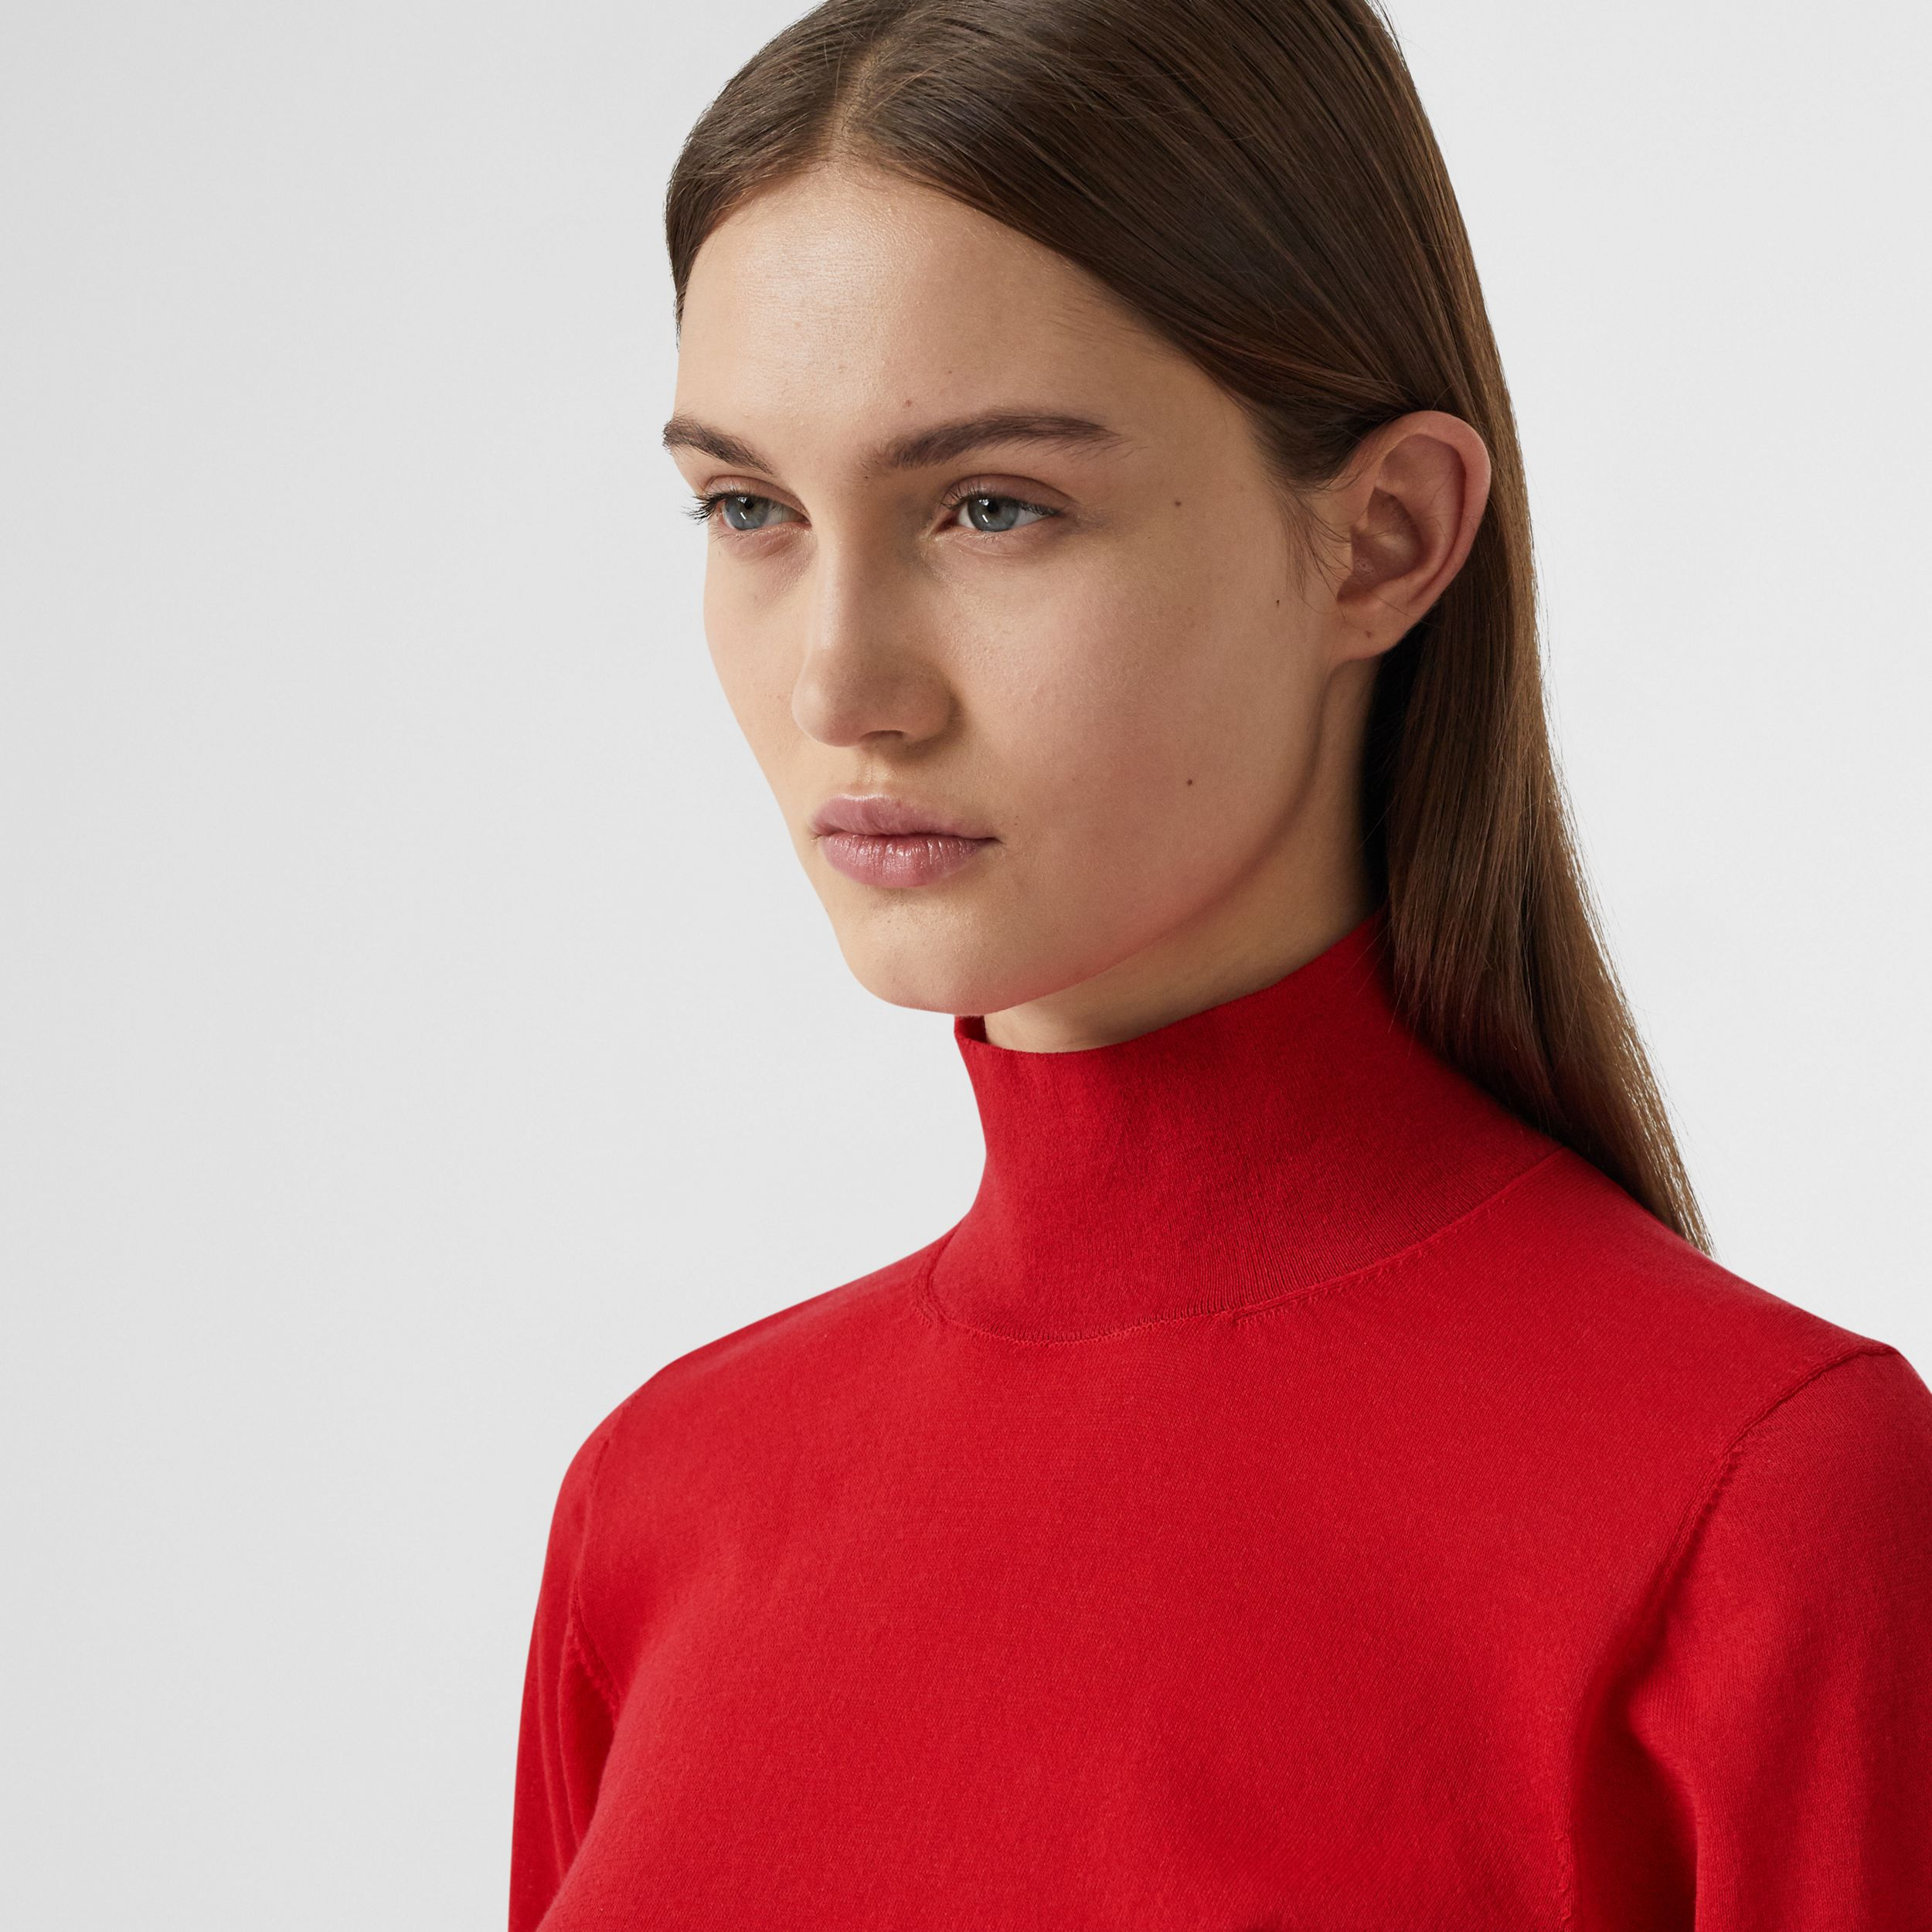 Puff-sleeve Knit Cotton Blend Turtleneck Sweater in Bright Red - Women | Burberry - 2